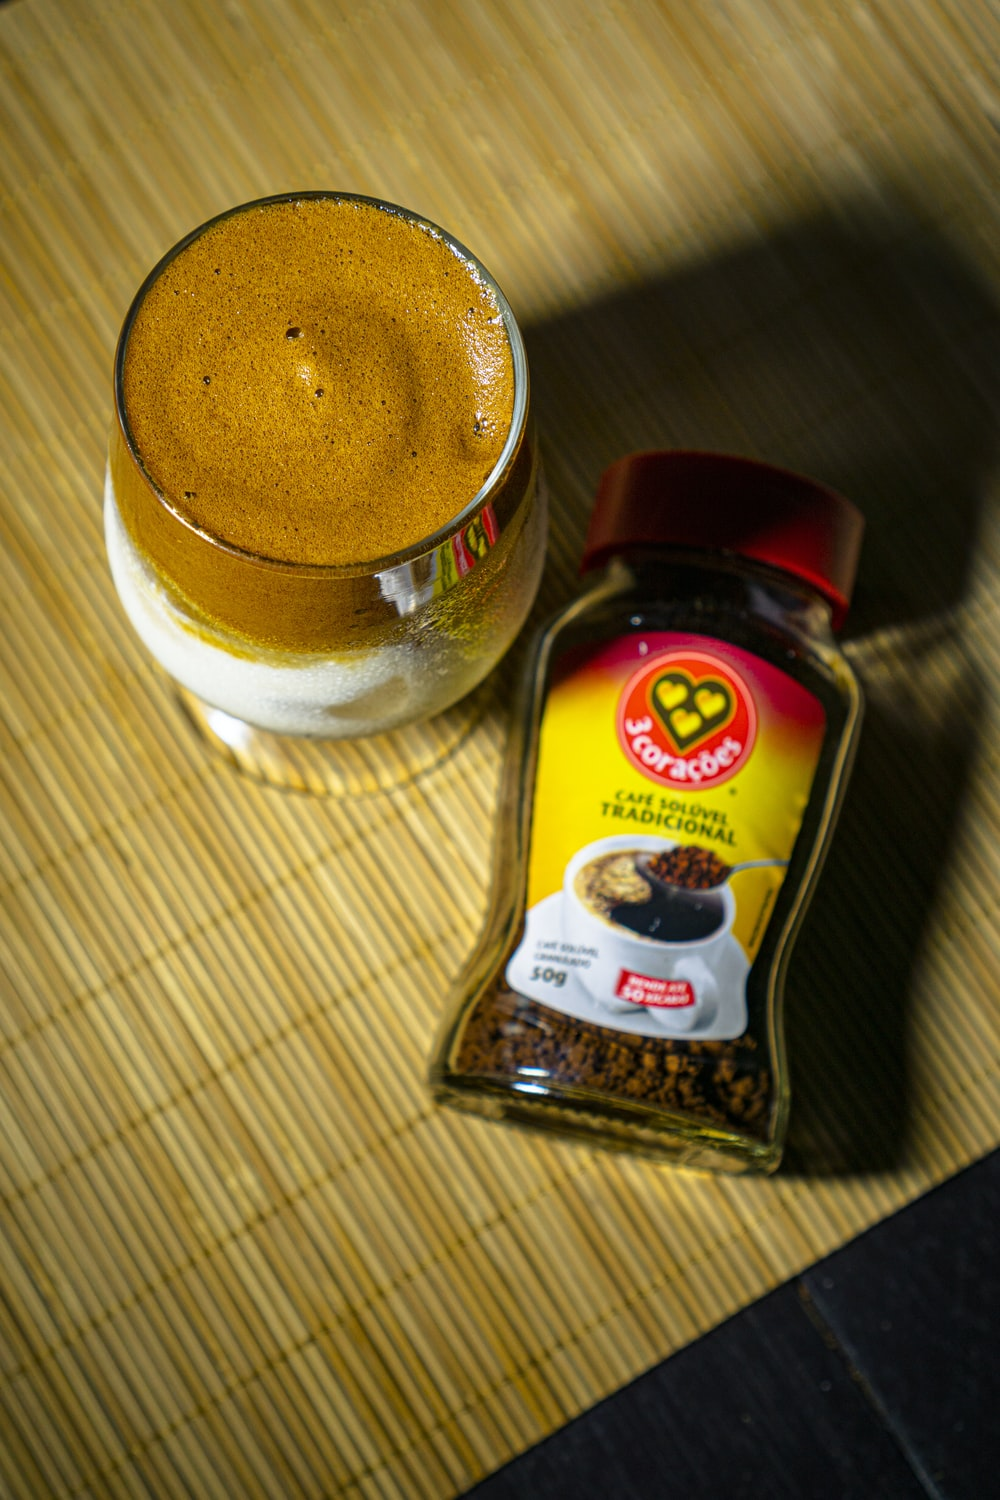 nescafe gold blend coffee bottle